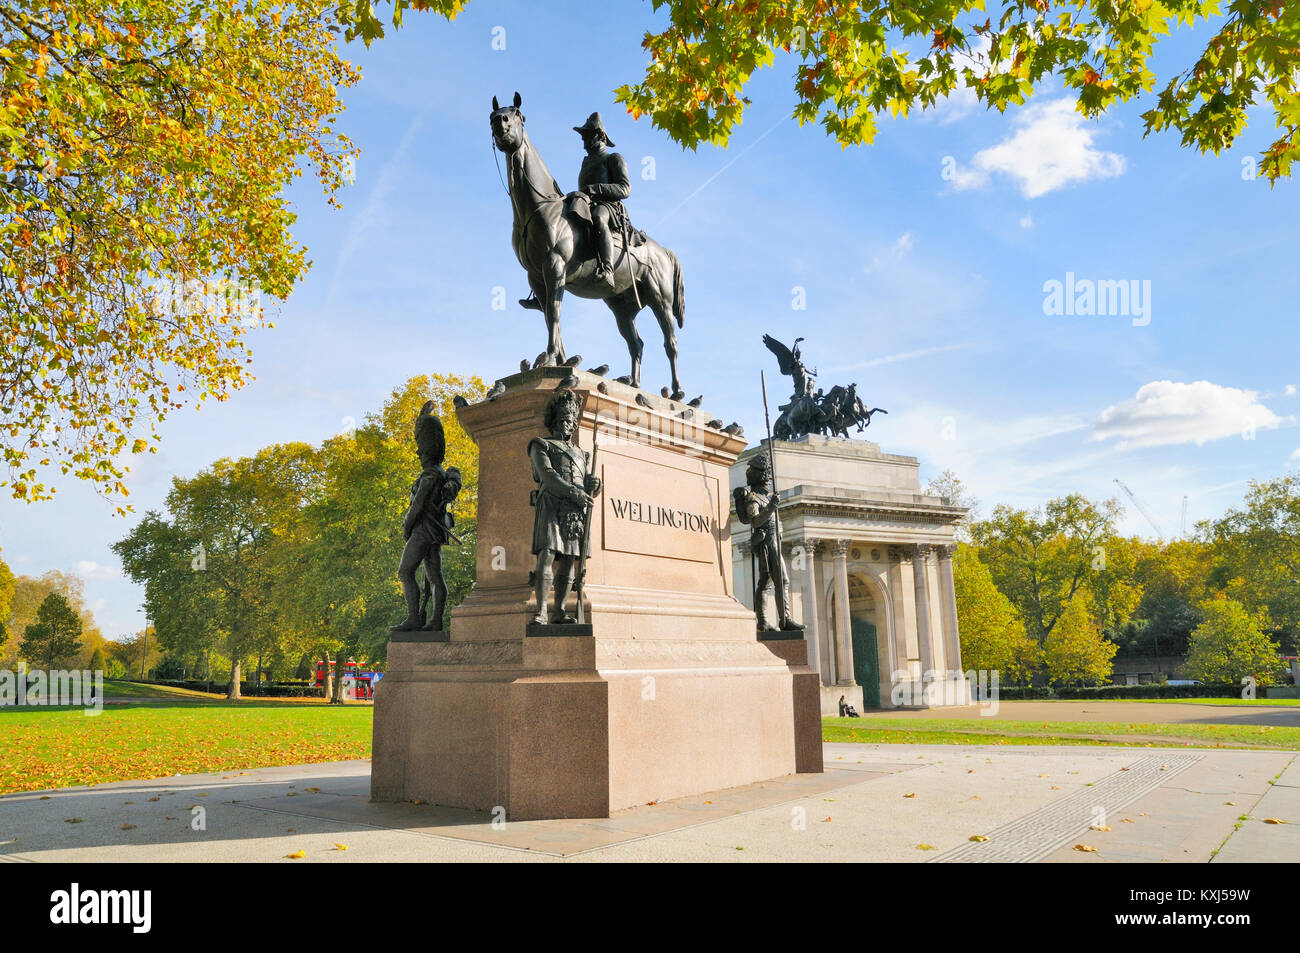 Duke of Wellington statue and Wellington Arch, Hyde Park Corner, London, England, UK - Stock Image